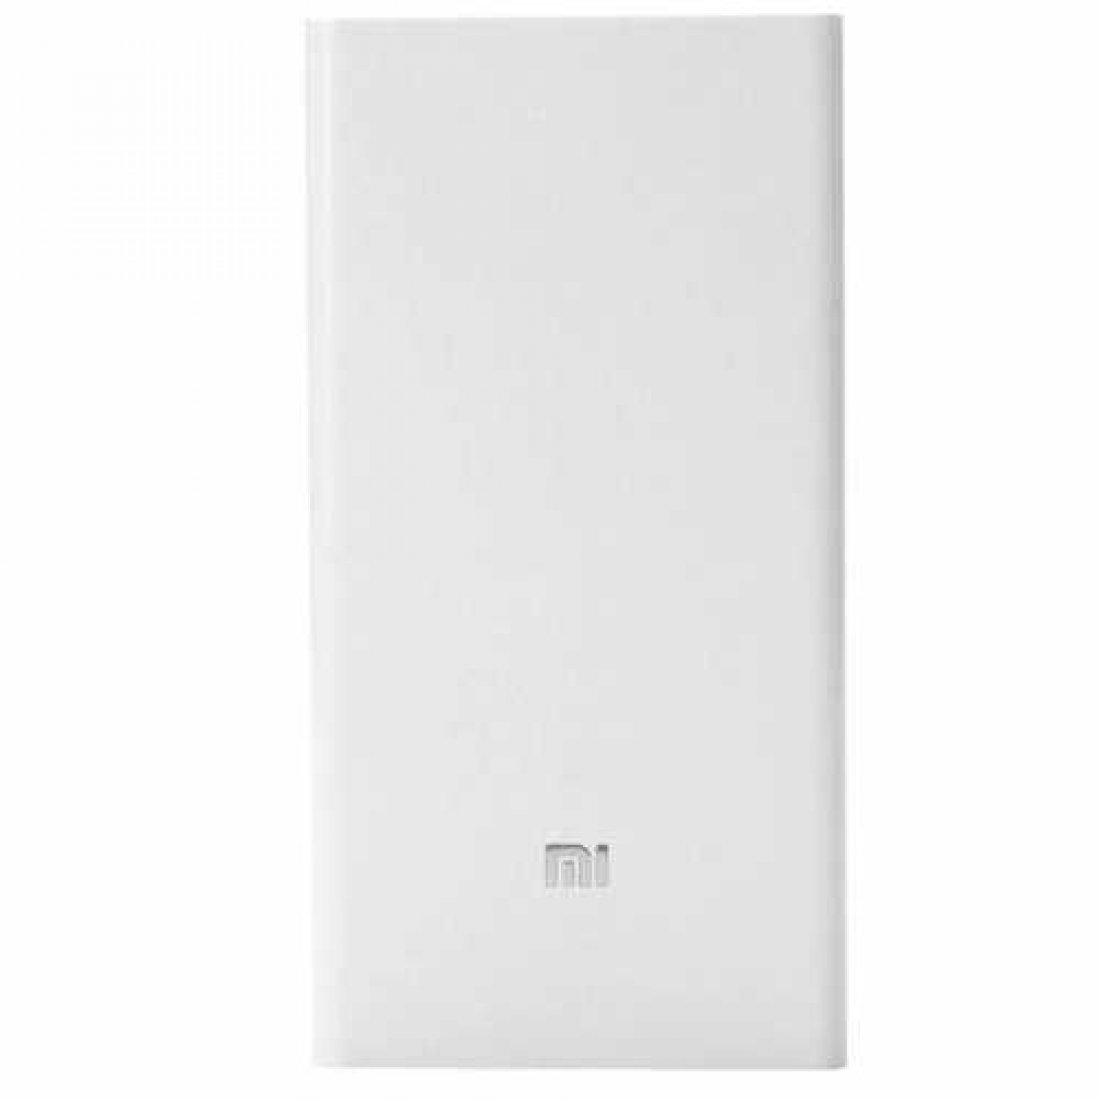 Купить Xiaomi Mi Power Bank 20000 mAh в Бишкеке